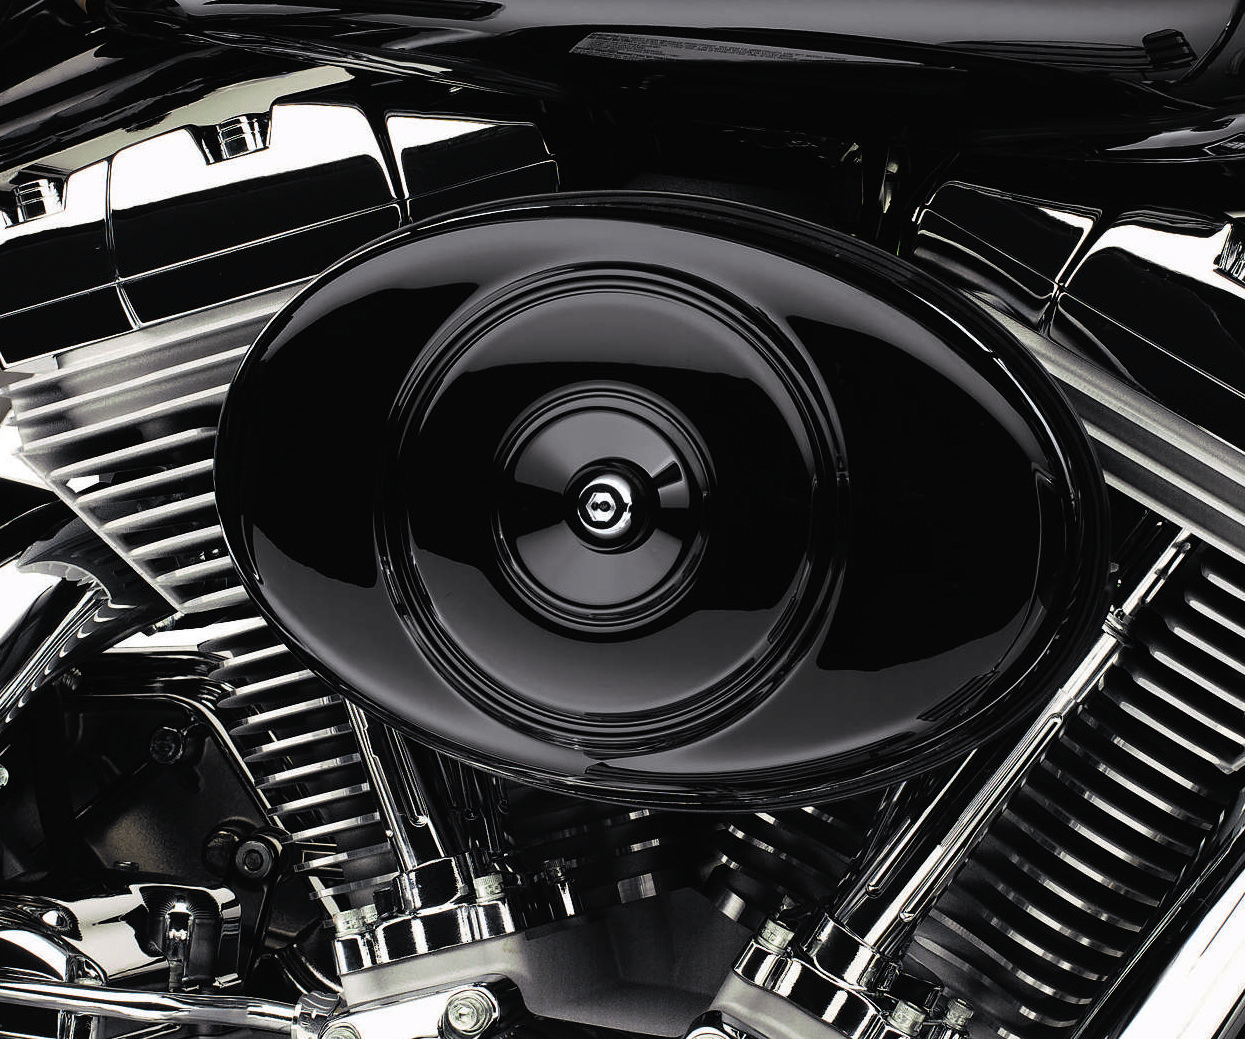 Available in vivid black or primed finish, this cover is ...